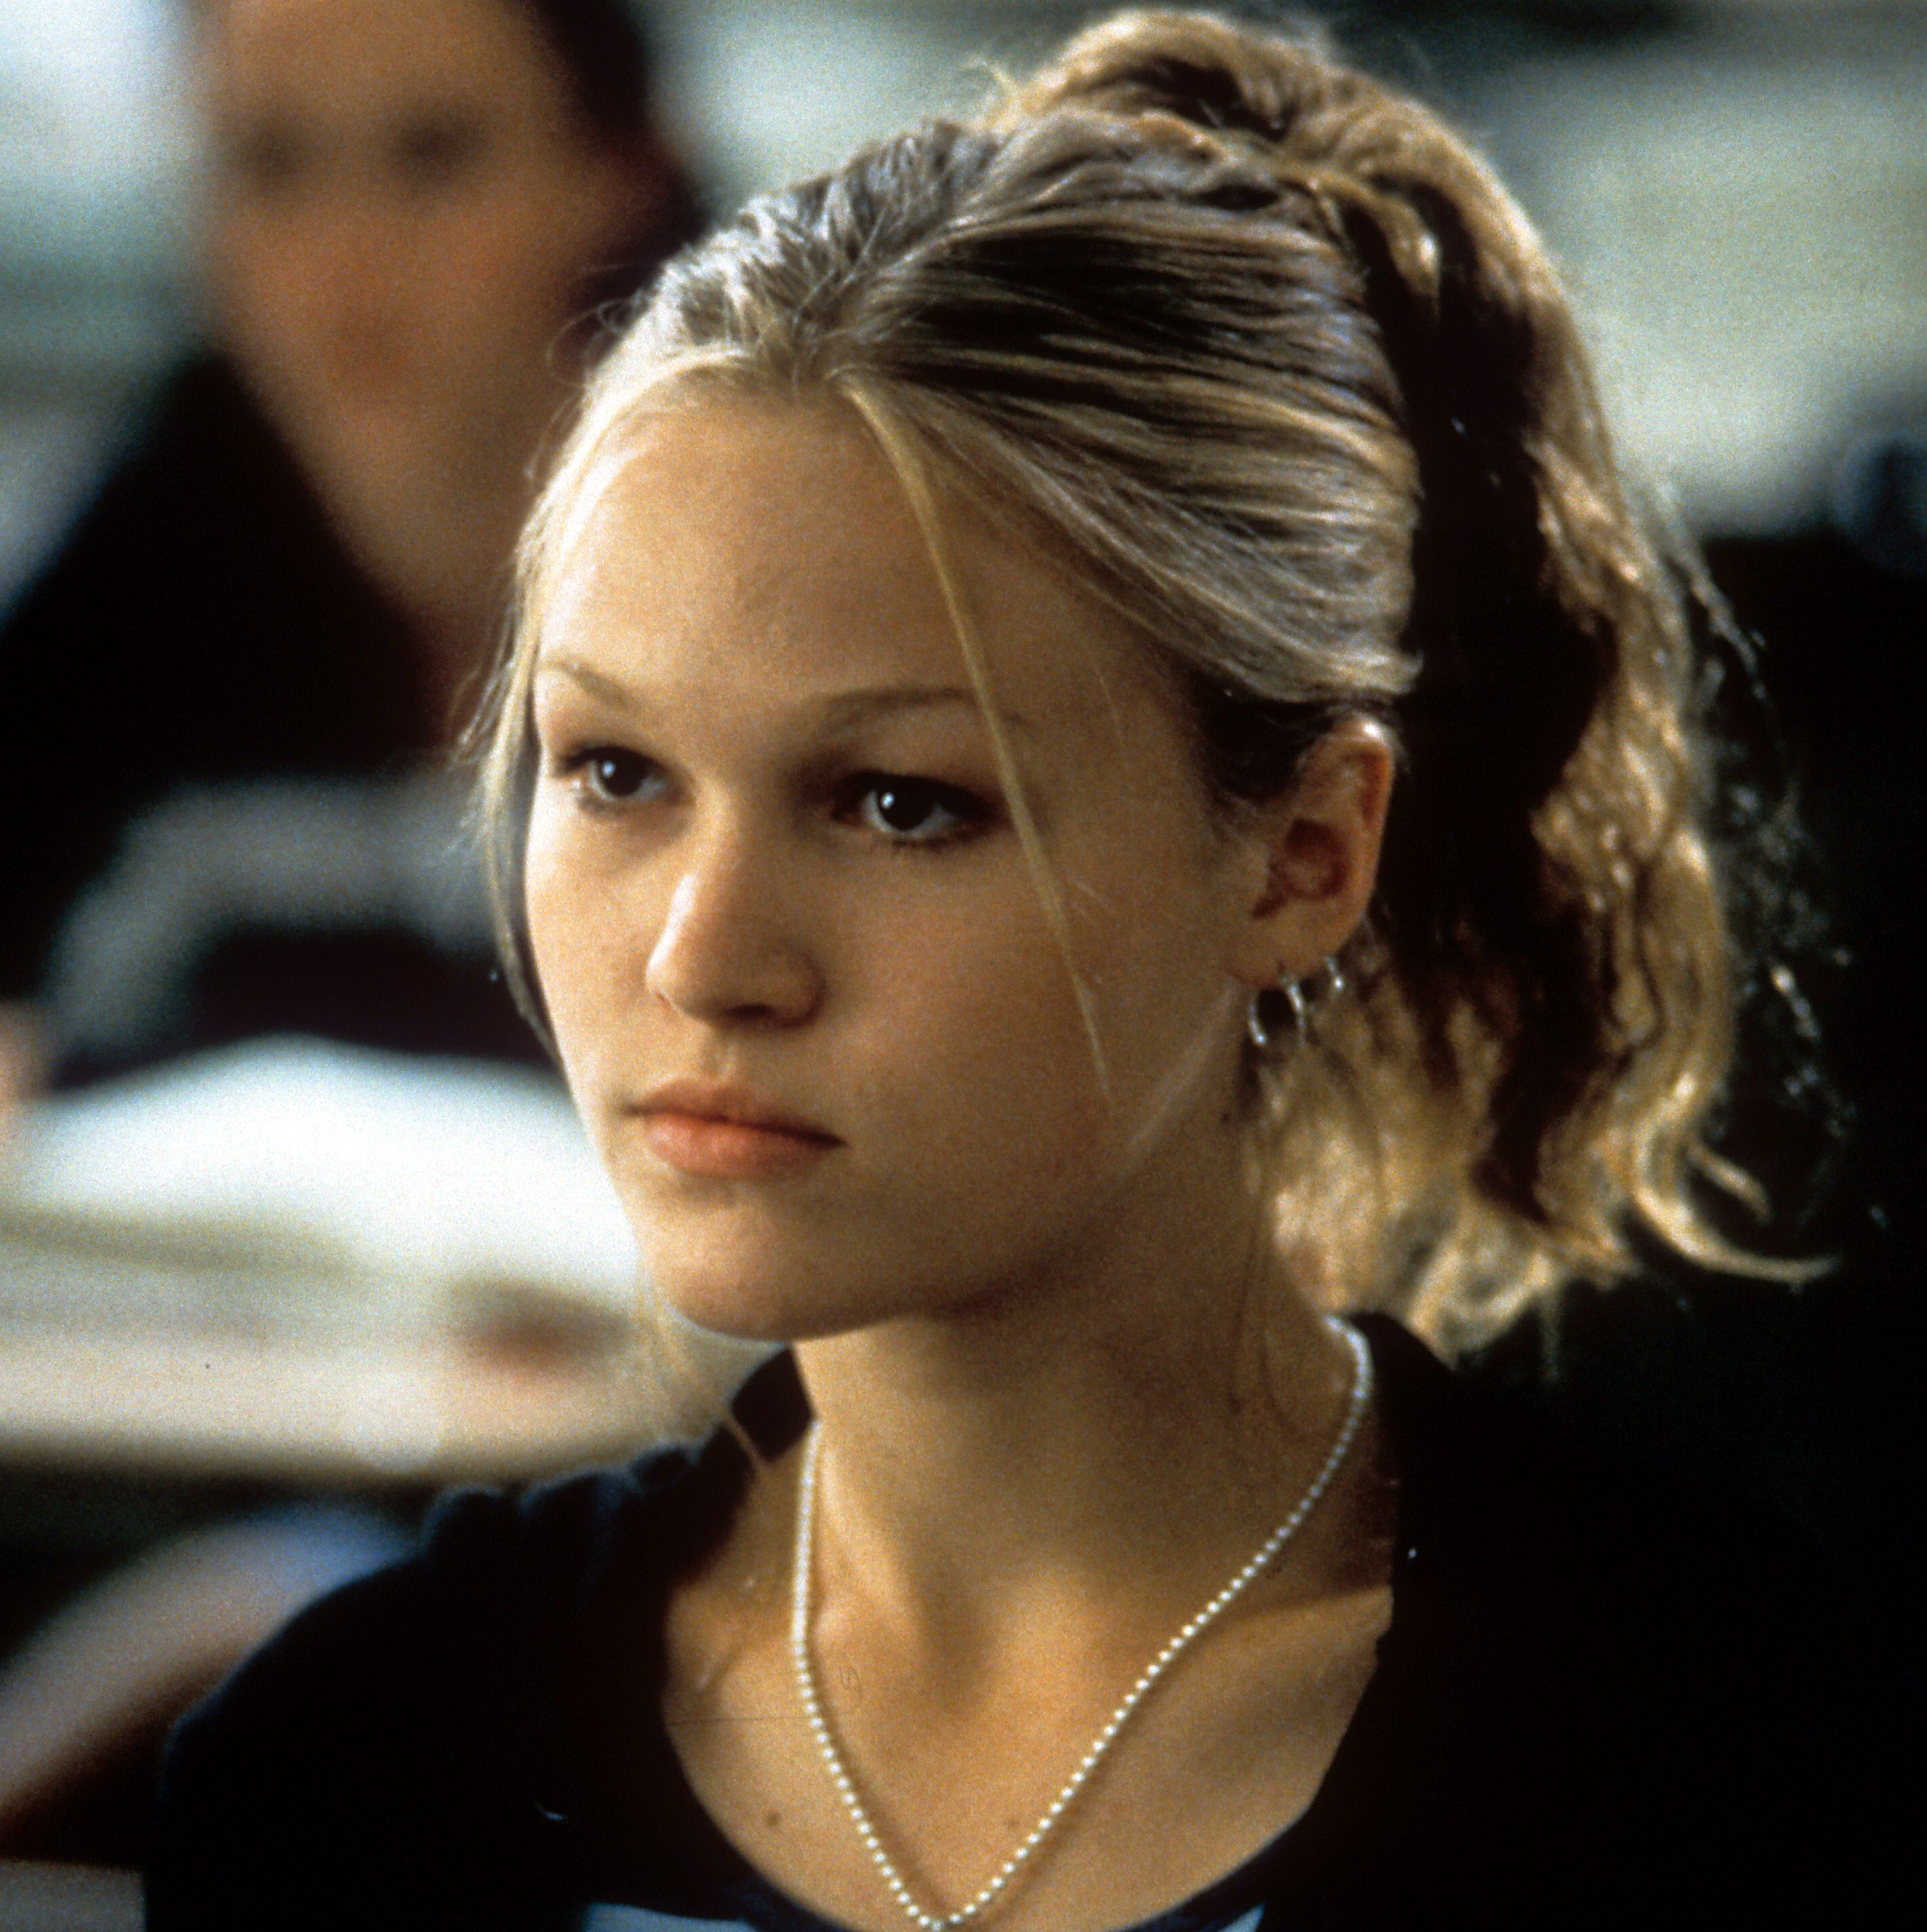 Julia Stiles In '10 Things I Hate About You'